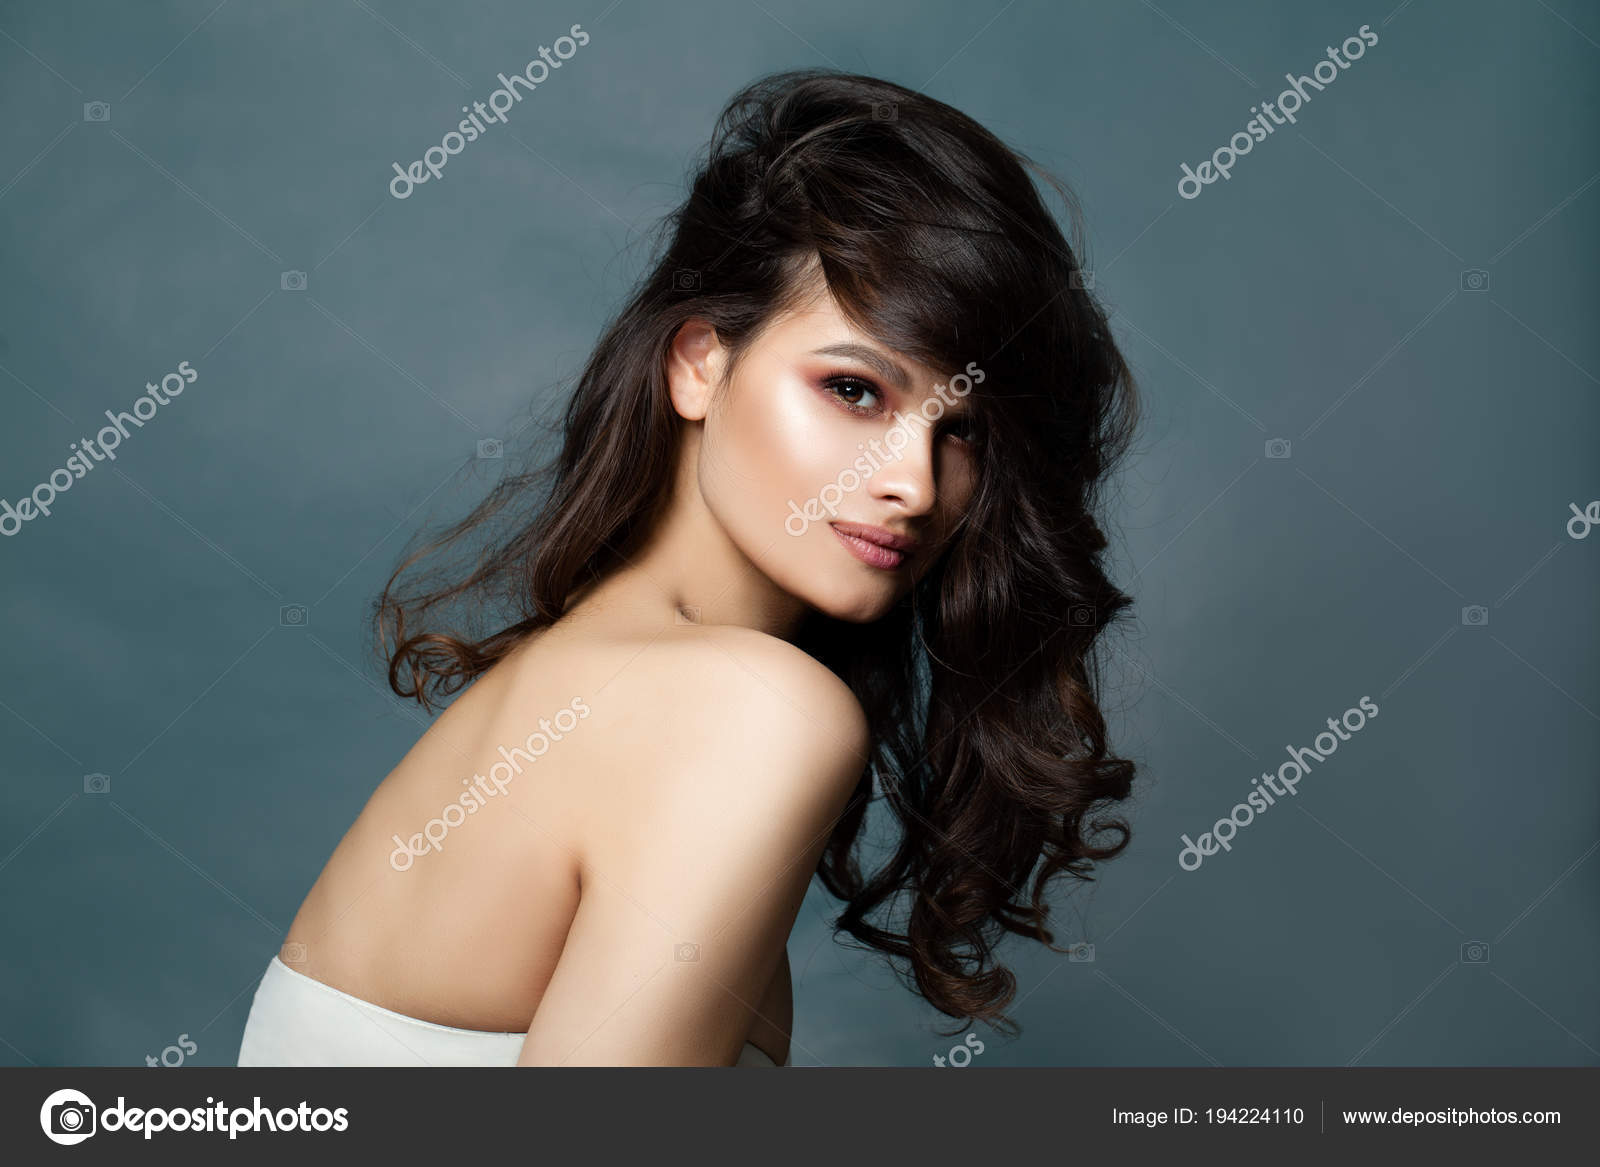 Fashion Portrait Of Beautiful Curly Hair Woman On Banner Stock Photo C Artmim 194224110